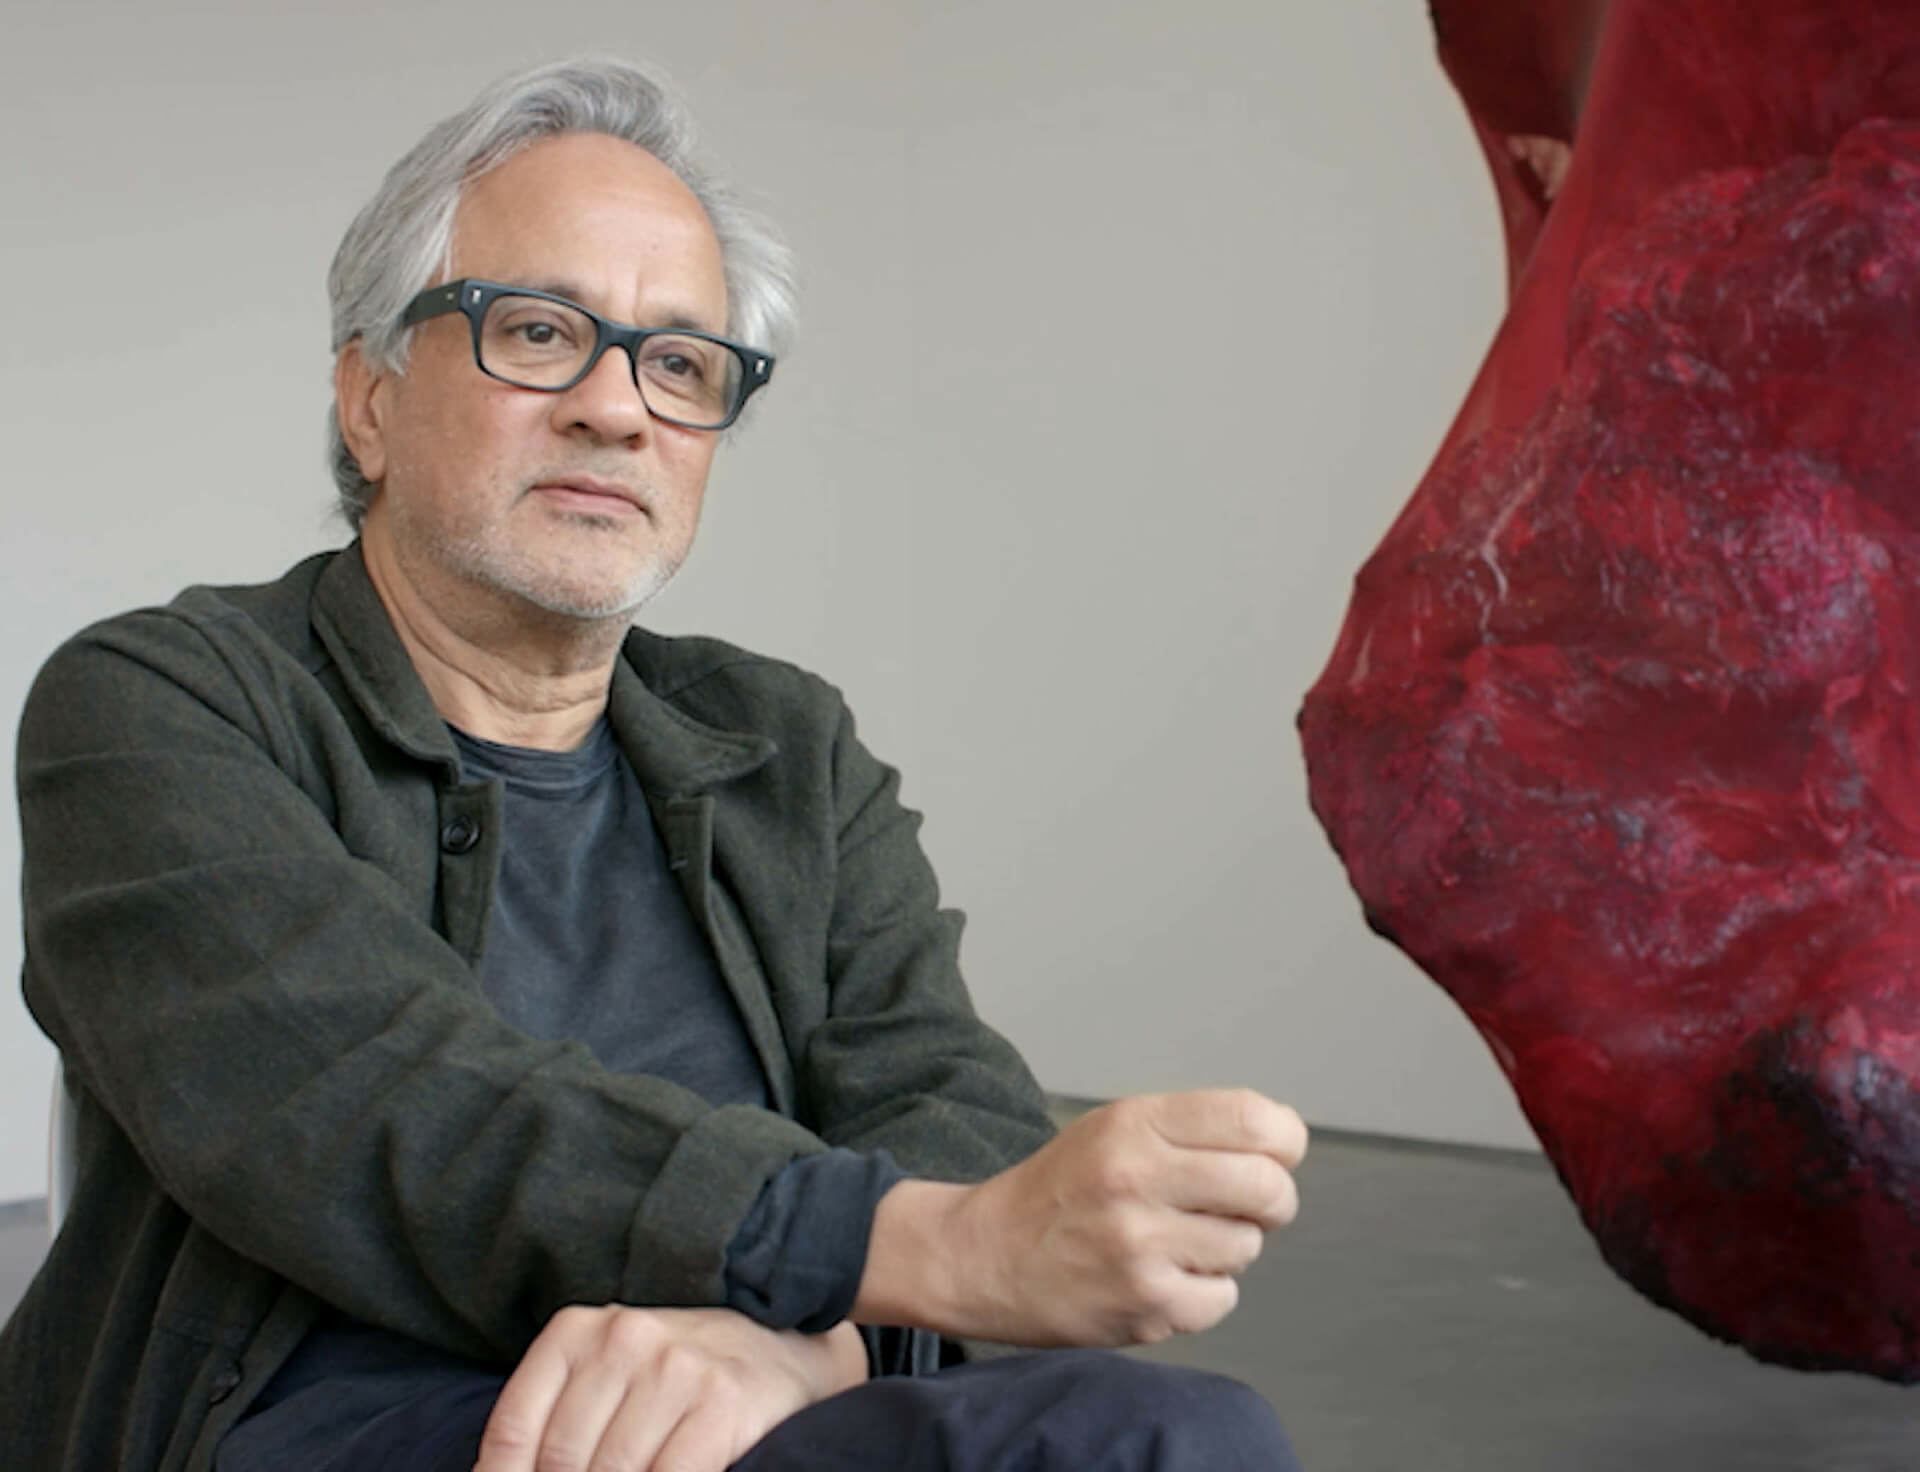 Watch Now: Anish Kapoor on his 16th exhibition with Lisson Gallery